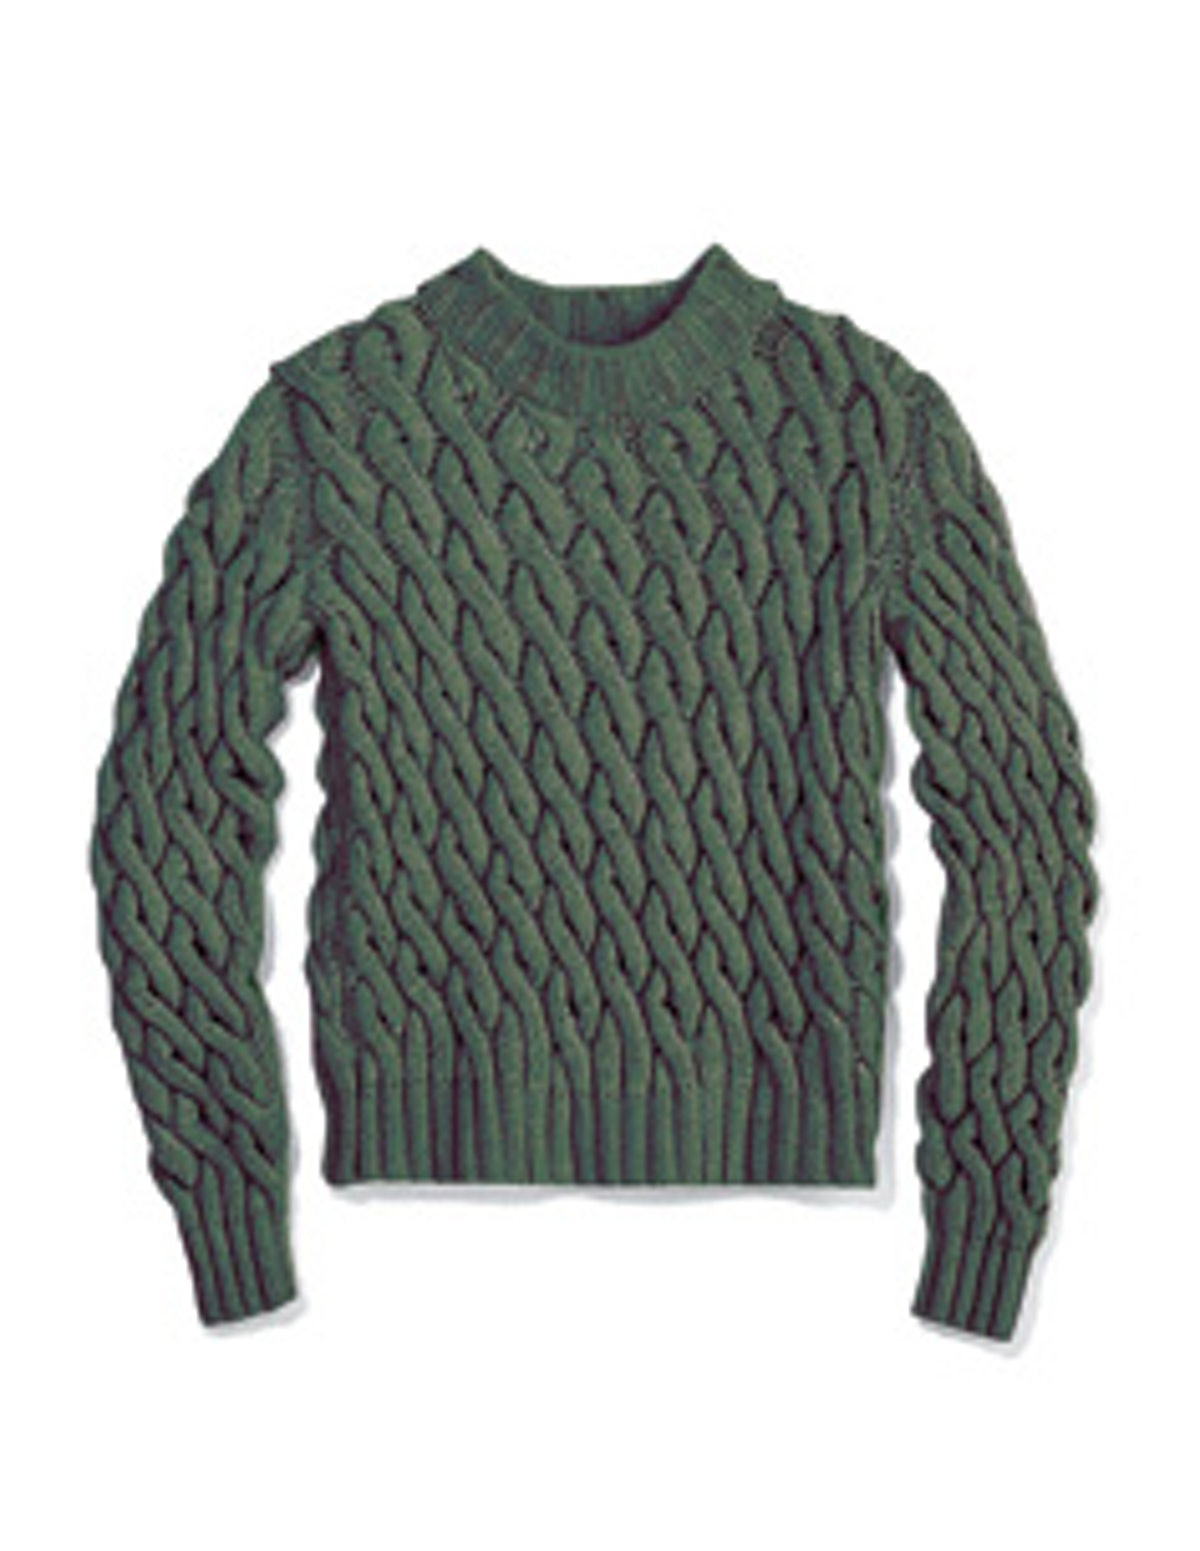 Orley Sweater